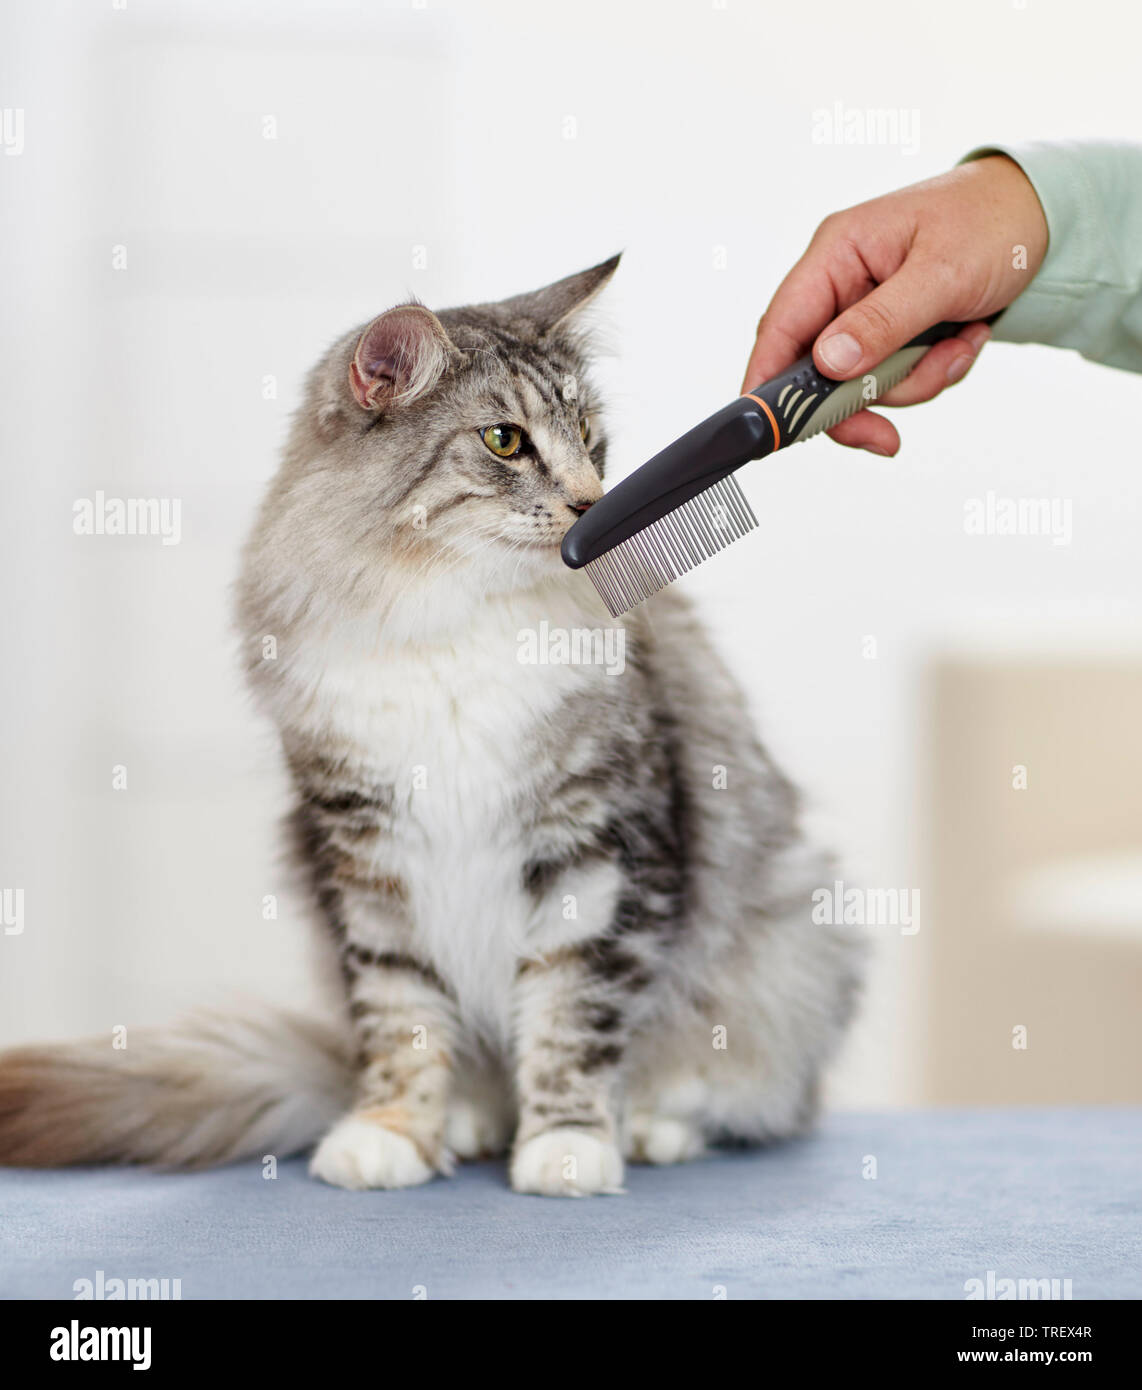 Norwegian Forest Cat. Adult sitting, sniffing at a comb. Germany - Stock Image